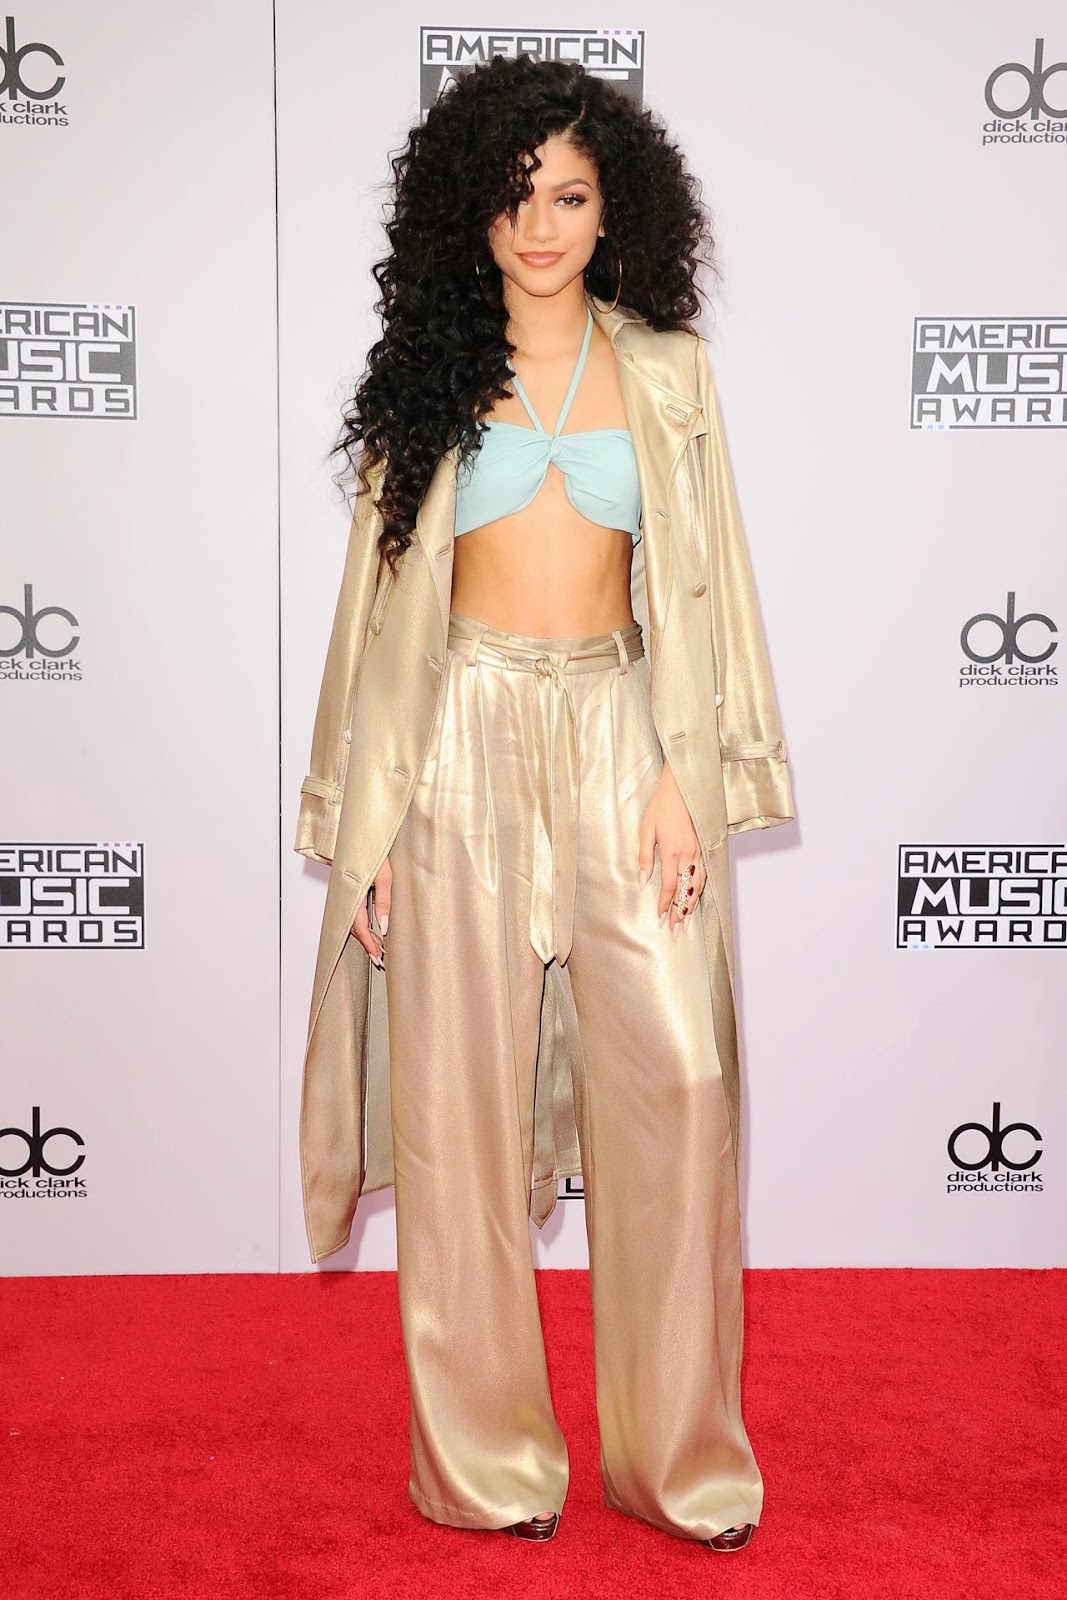 Zendaya Coleman in a metallic gold trench and mint green bralet at the 2014 American Music Awards